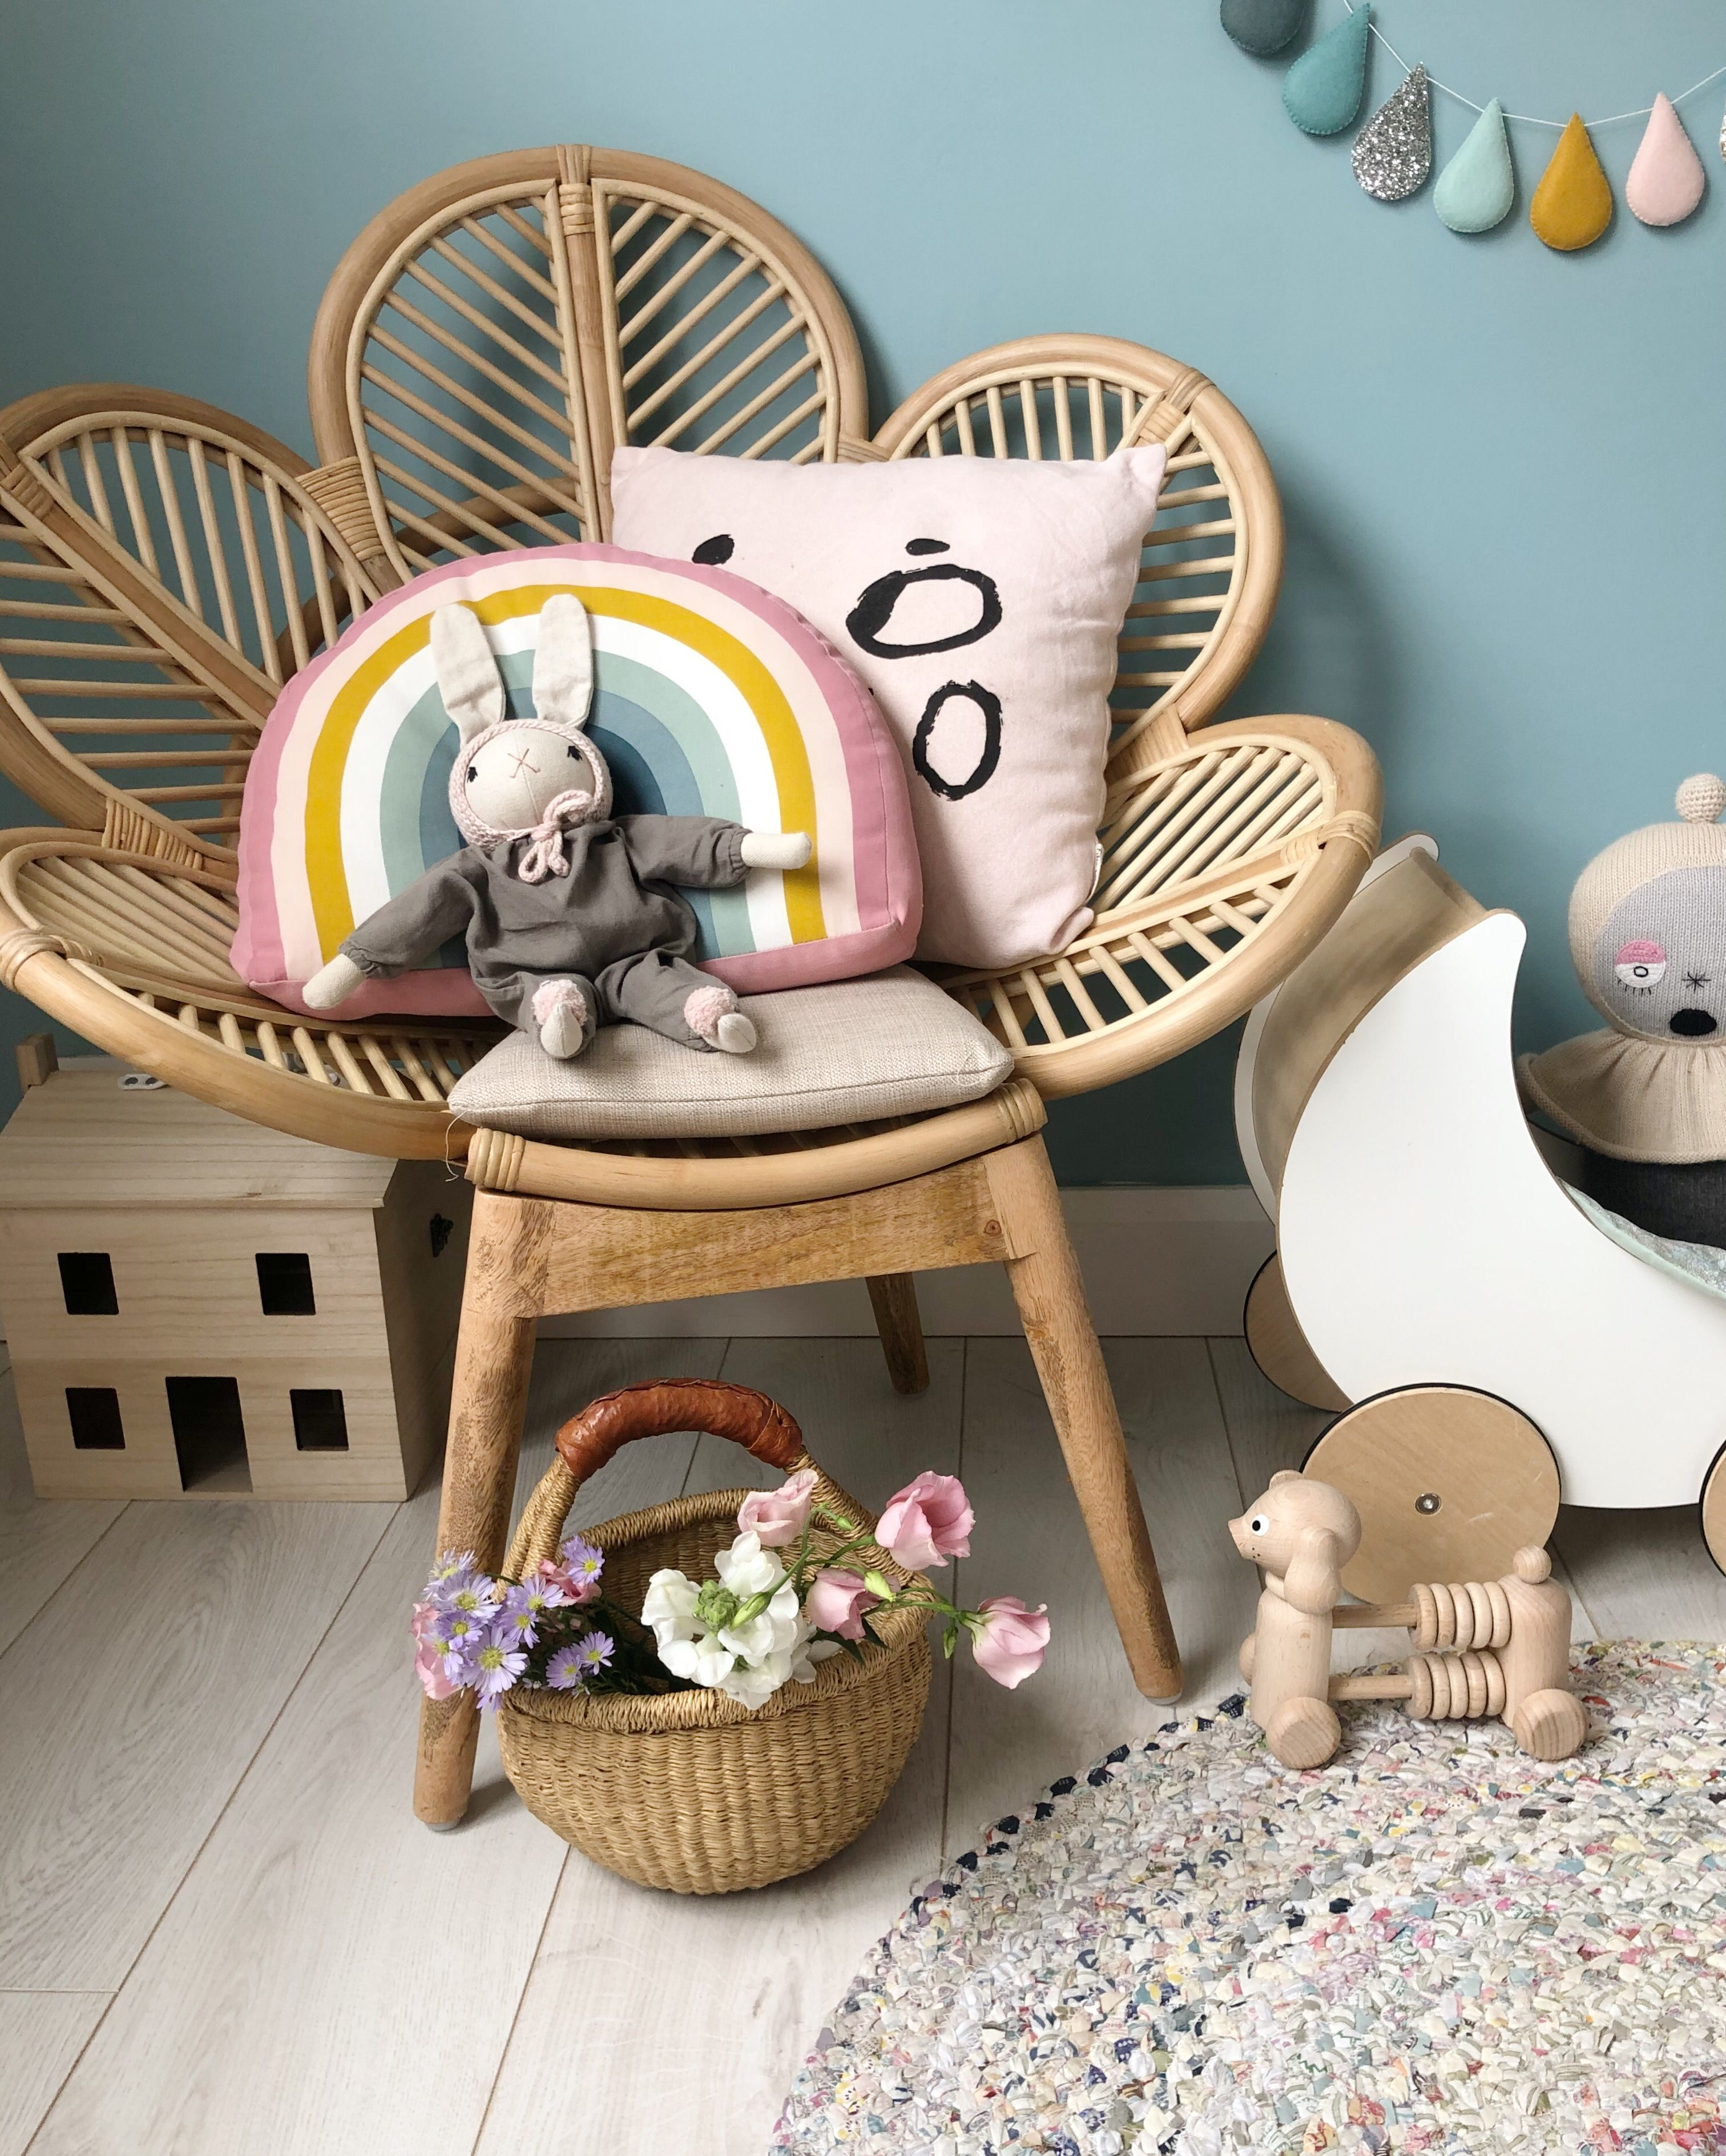 Hanging Chairs In Bedrooms Hanging Chairs In Kids Rooms Swing Chair Bedroom Bedroom Swing Swing Chair For Bedroom